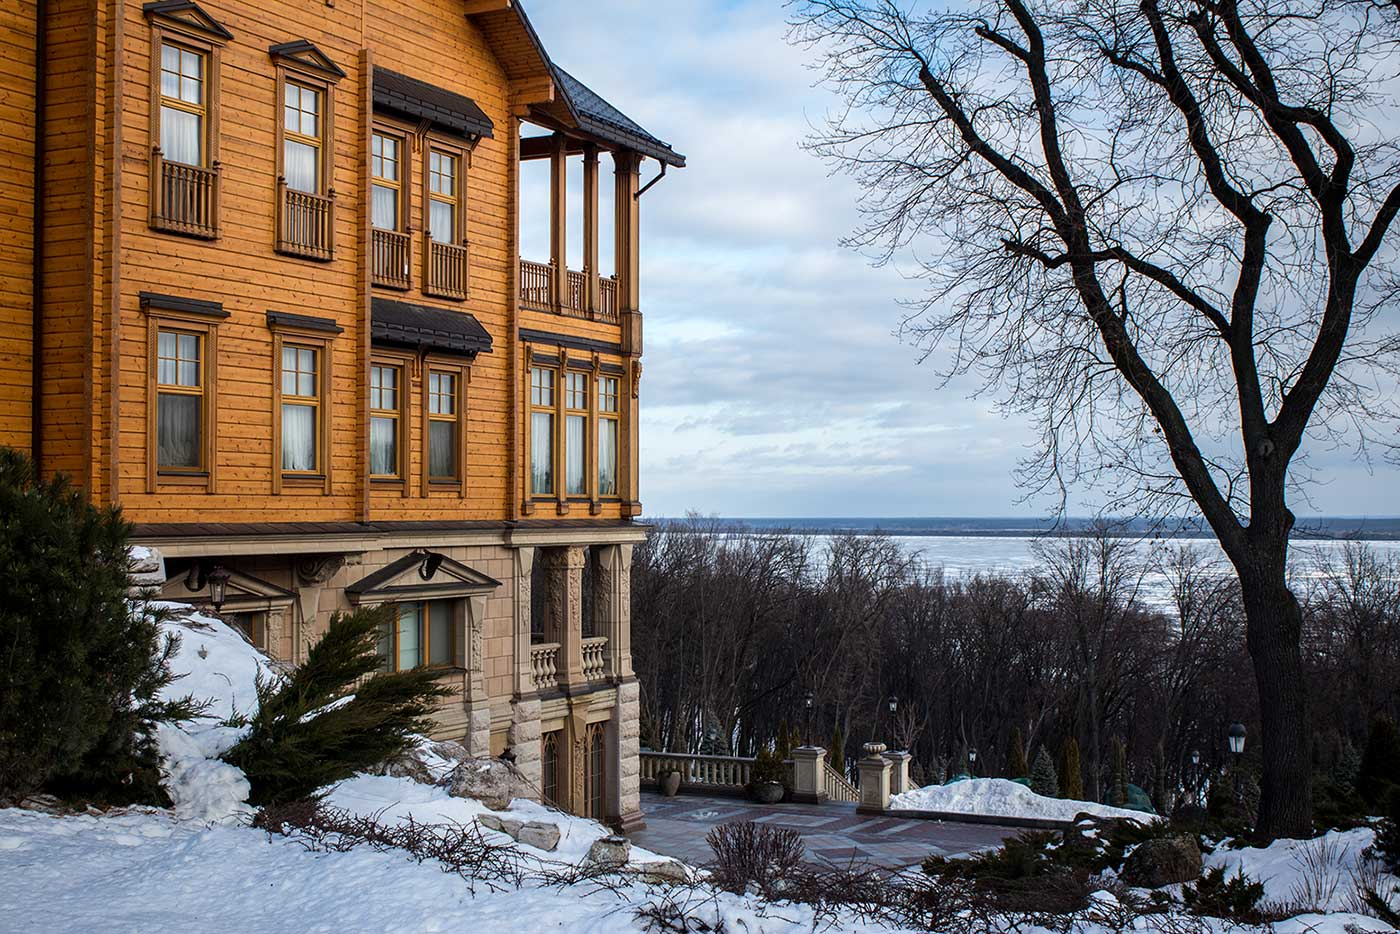 The Honka house at Mezhyhirya in January, with the River Dnieper beyond covered in thick ice.